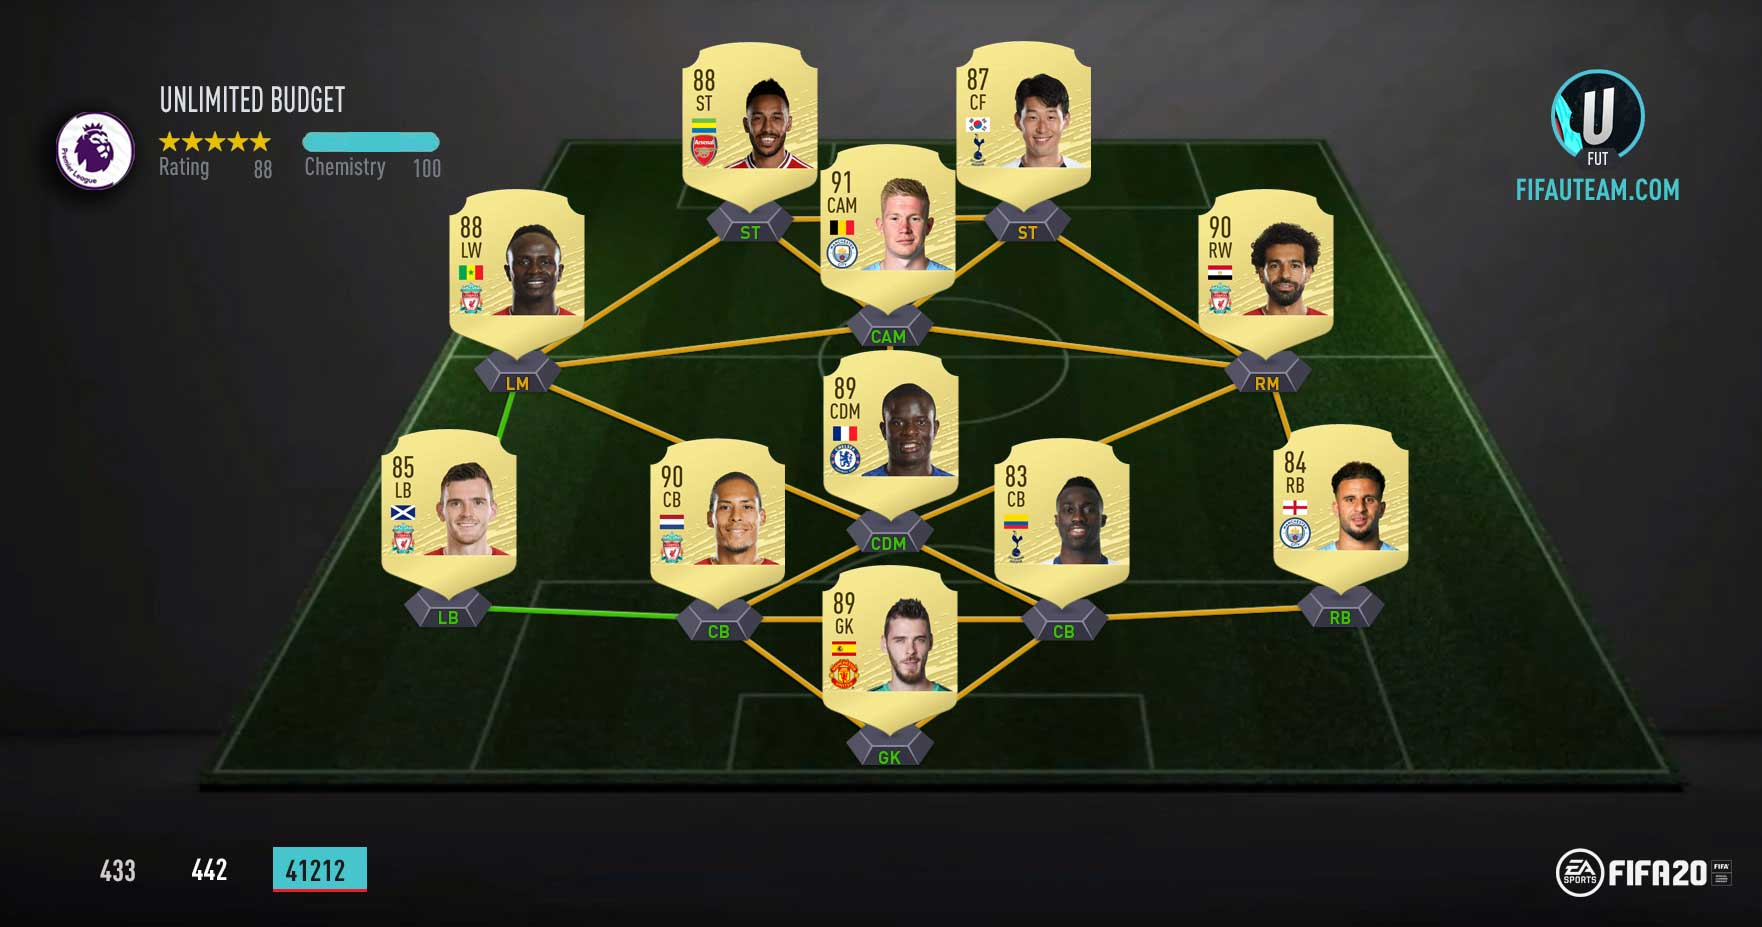 The Best FIFA 20 League to Play on Ultimate Team